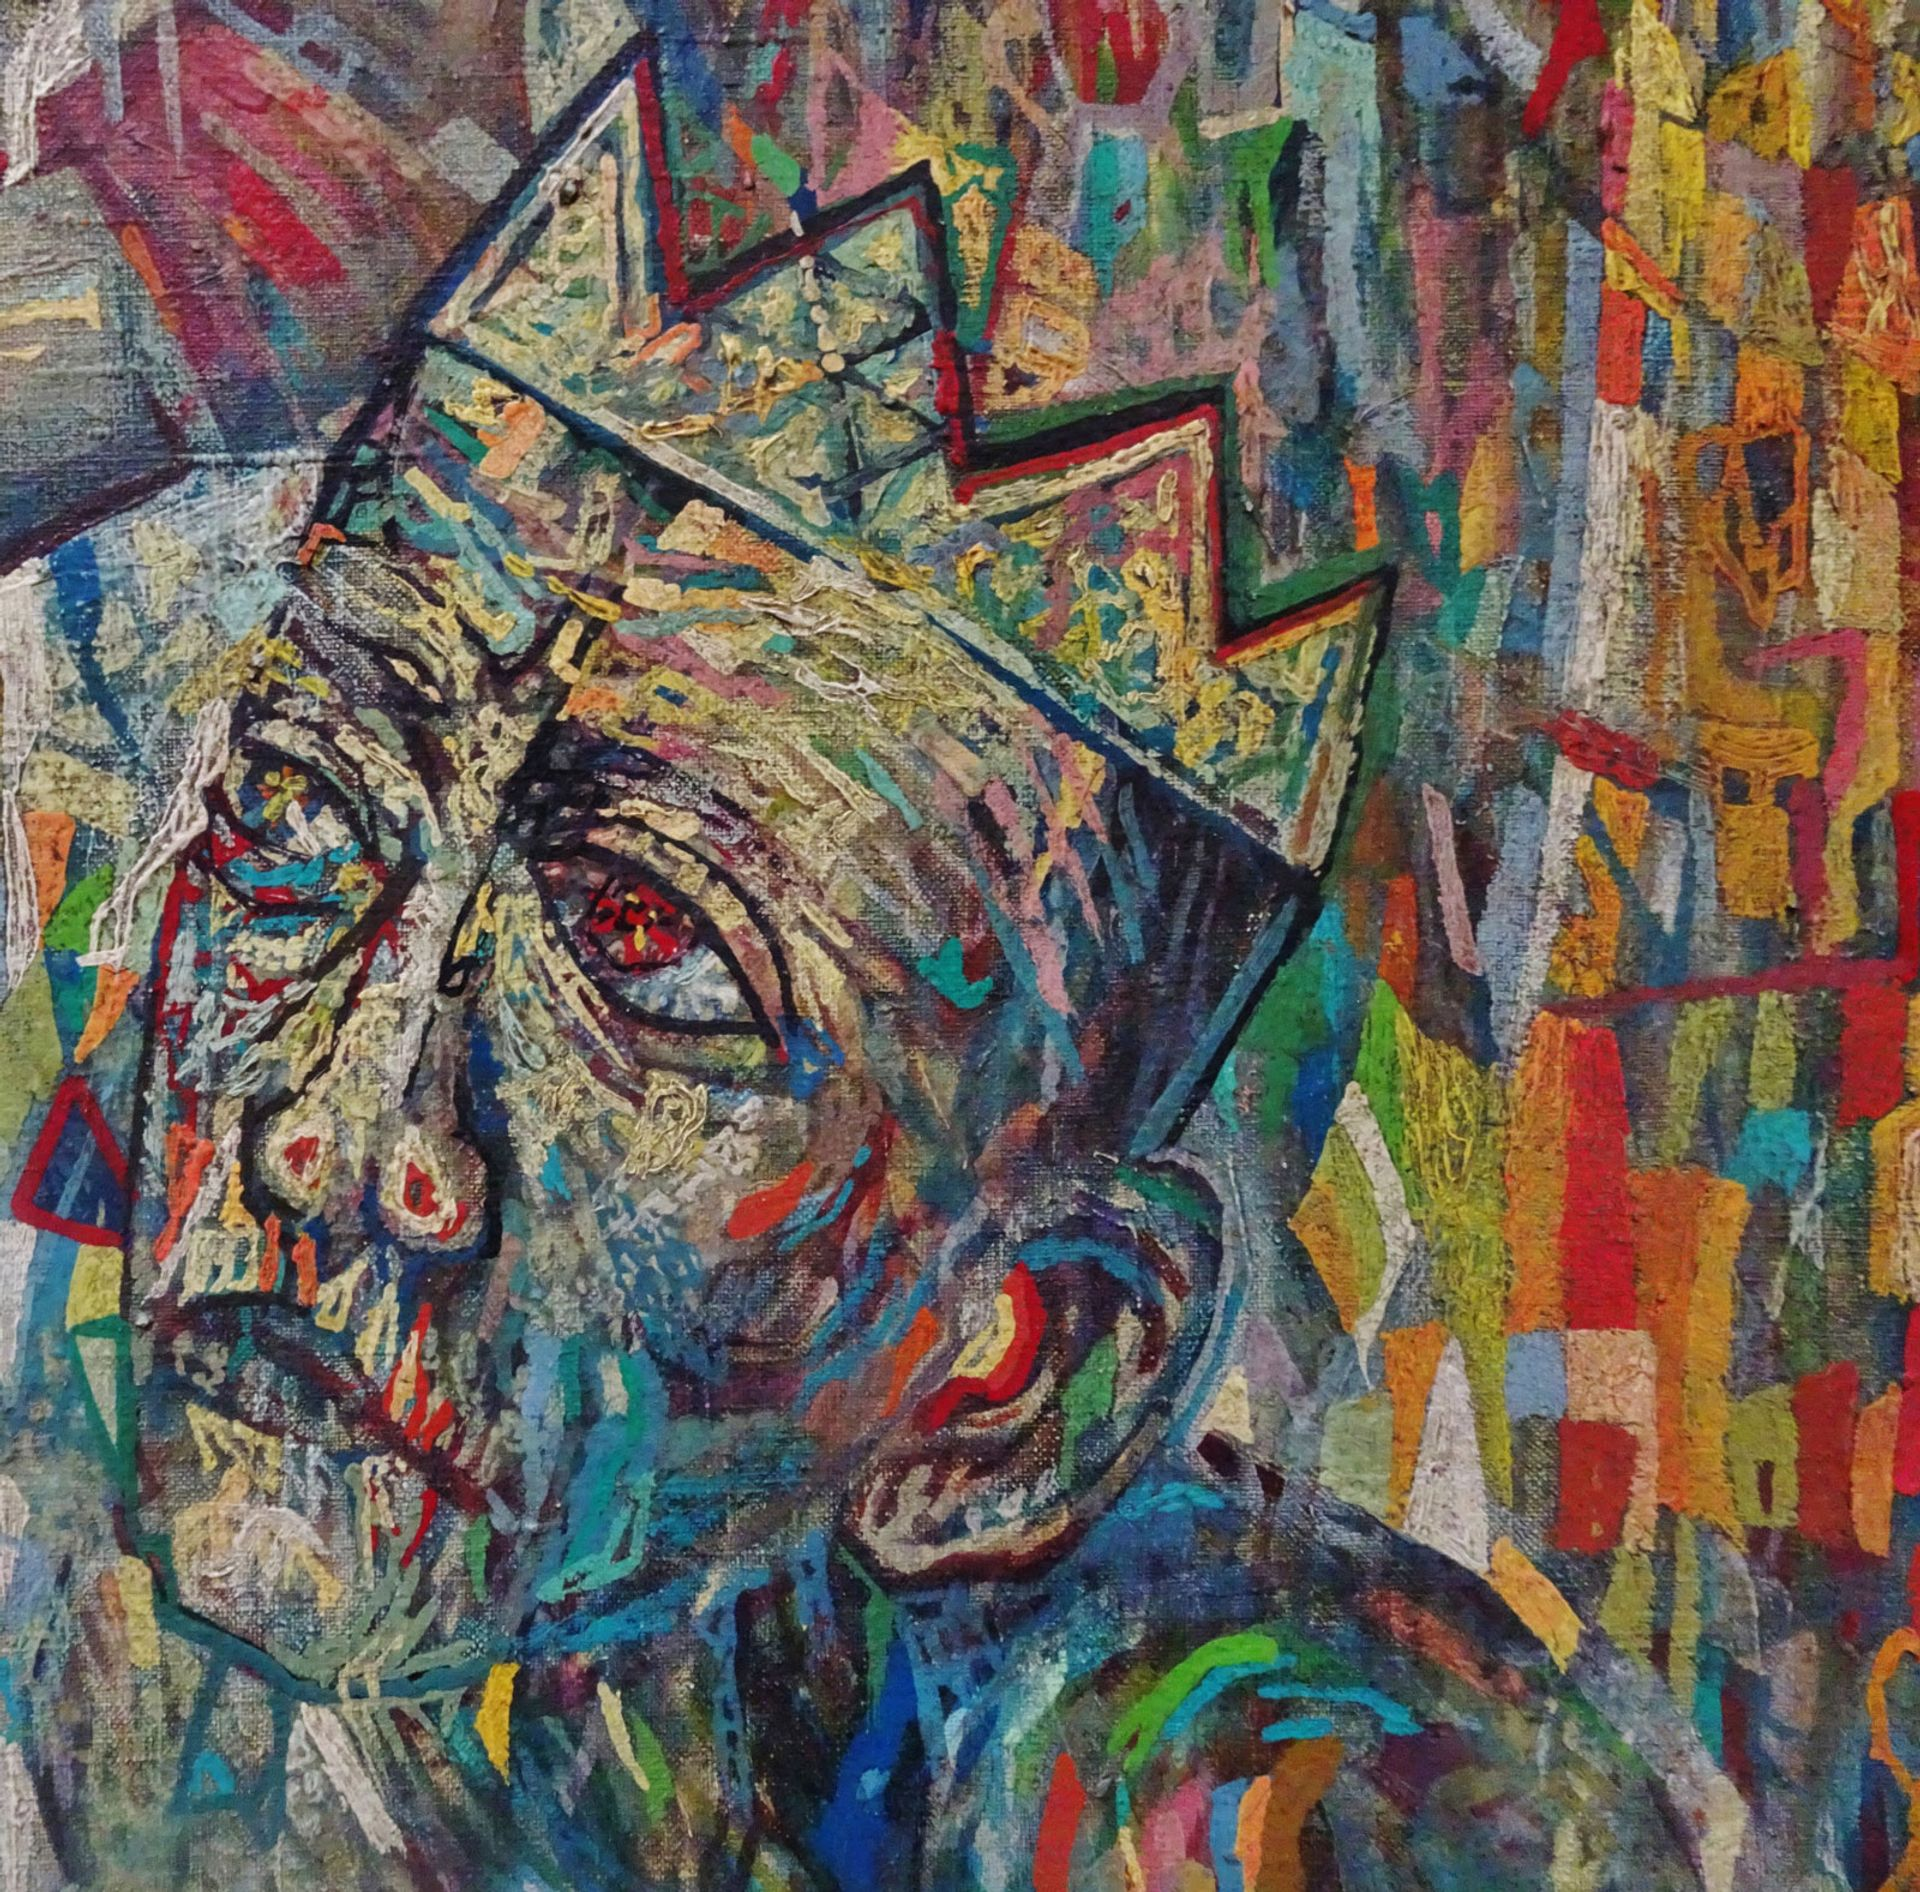 Detail of painting presented in Ghent as Pavel Filonov's Supreme Being (1914) Fondation Dieleghem